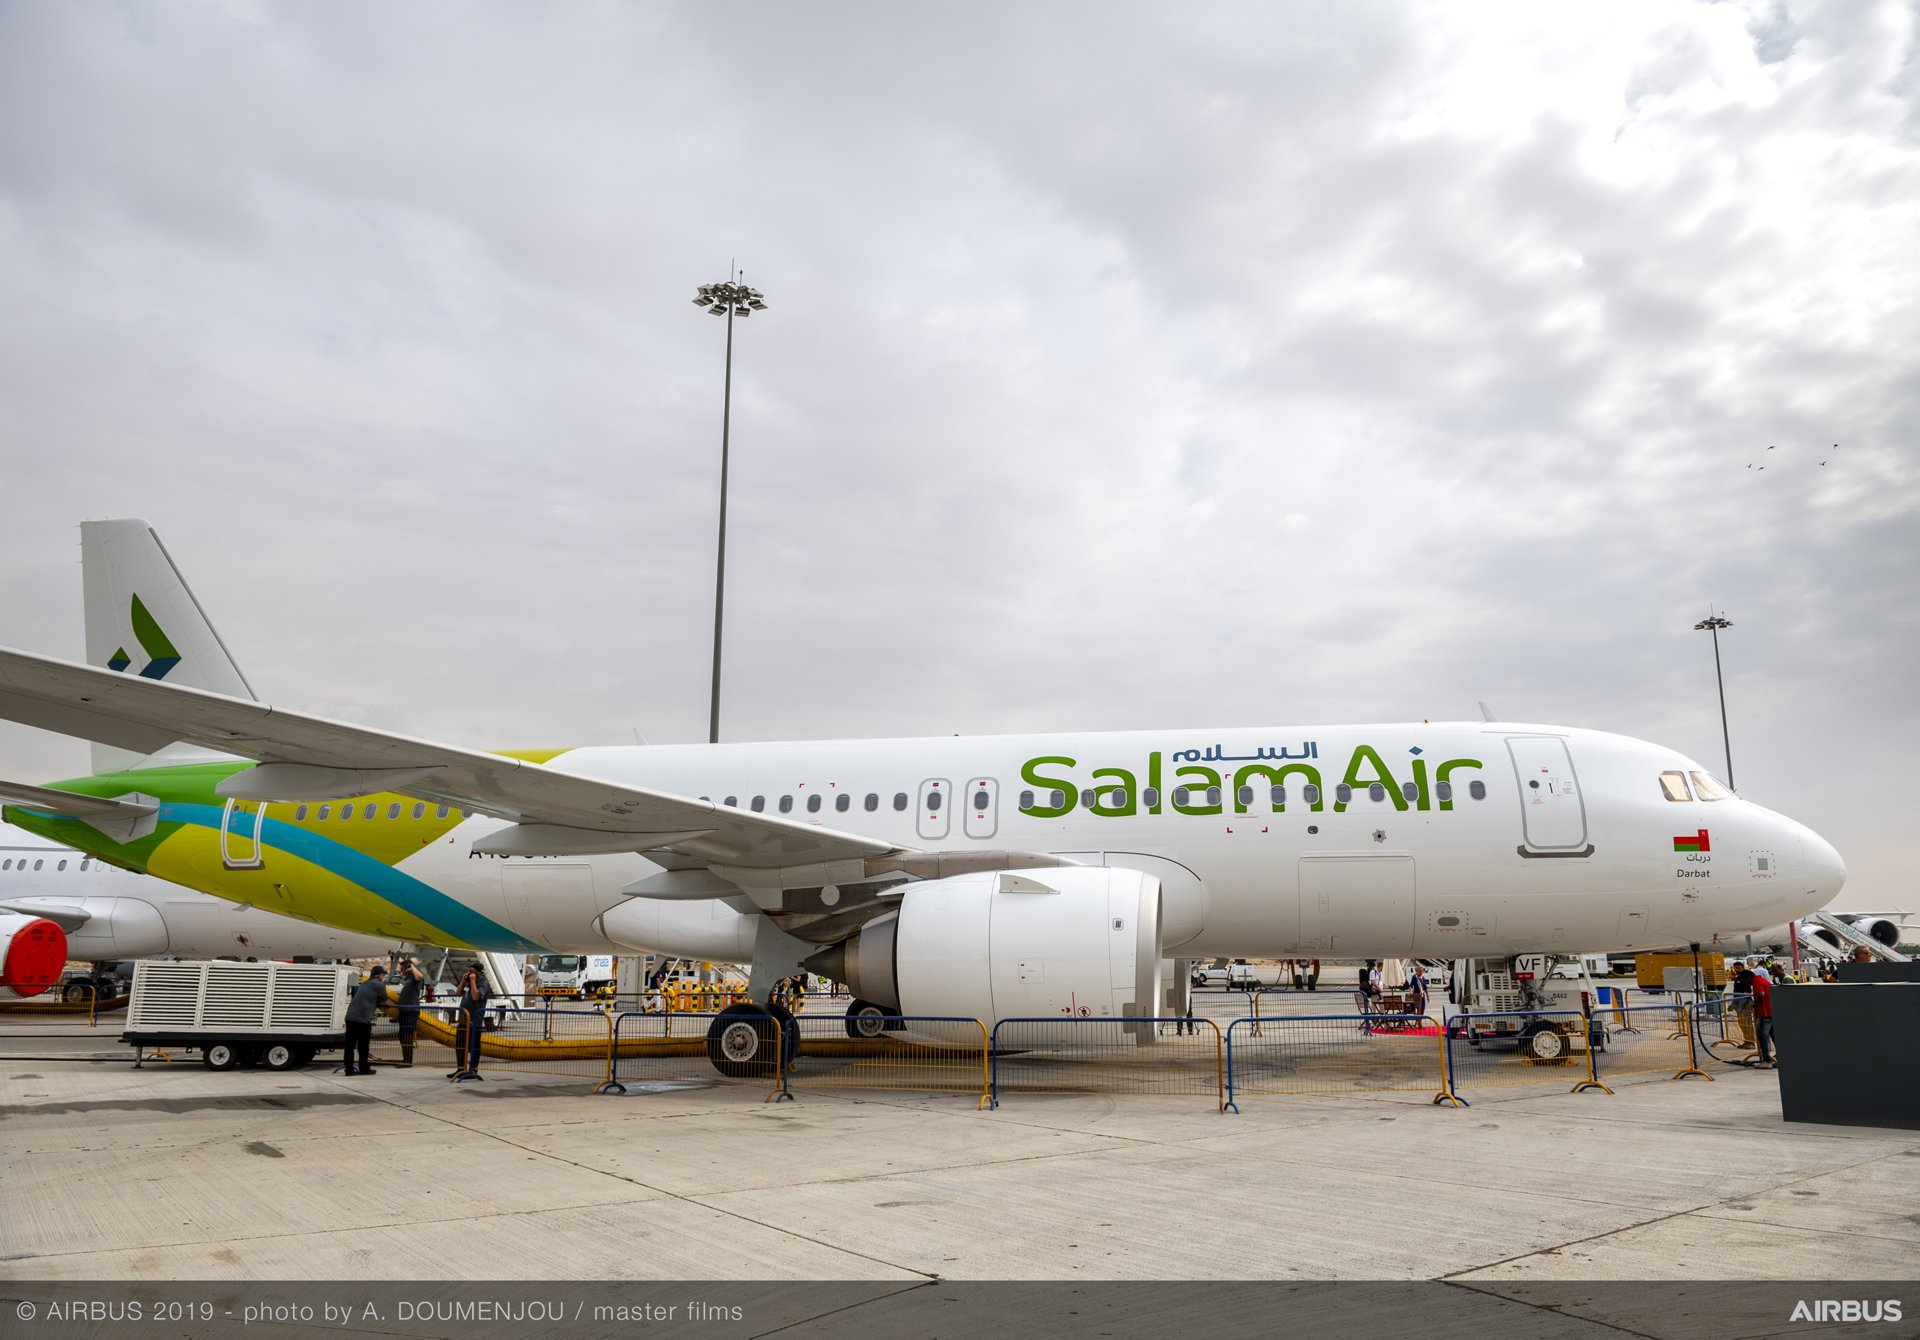 The Dubai Airshow's static display area included the presence of a highly-efficient A320neo operated by Oman-based SalamAir